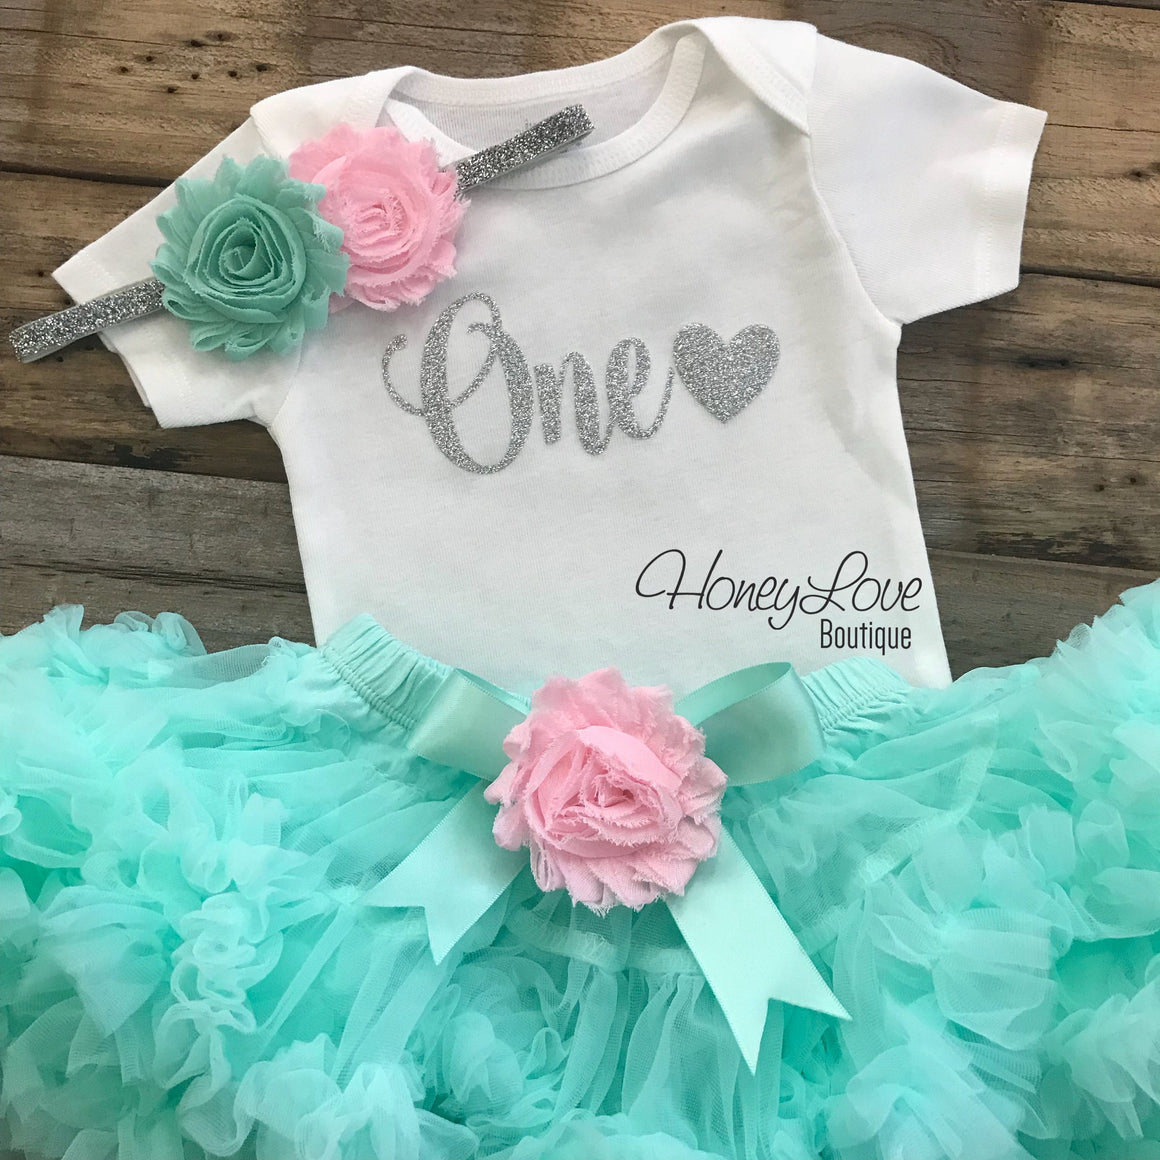 One with heart - Birthday Outfit - Mint/Aqua, Light Pink and Gold/Silver glitter - HoneyLoveBoutique